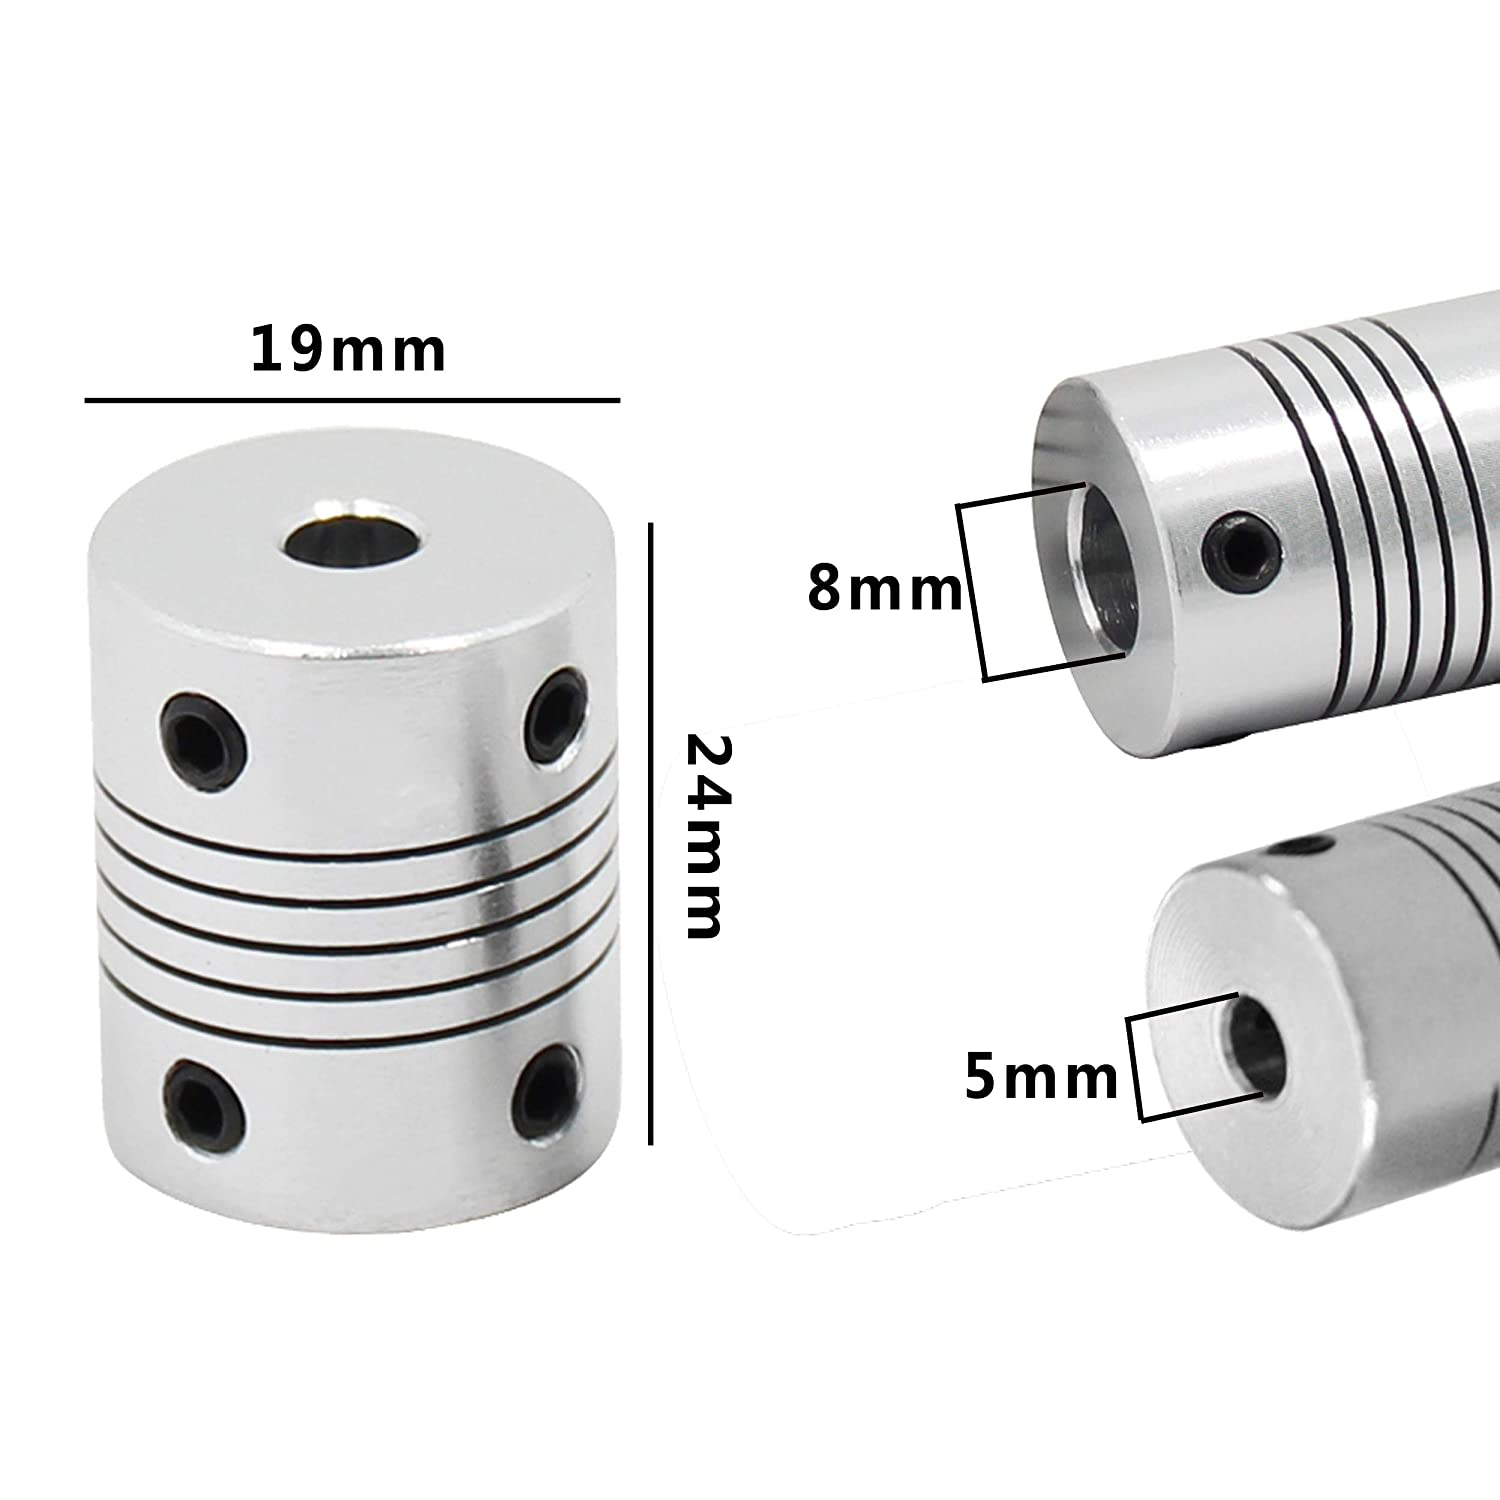 10219 HIC Technology 3DP AMZN Pack of 2 HICTOP Flexible Couplings 5mm to 8mm NEMA 17 Shaft Coupler for Creality Ender 3//3Pro CR-10//10S RepRap 3D Printer Prusa i3 or CNC Machine